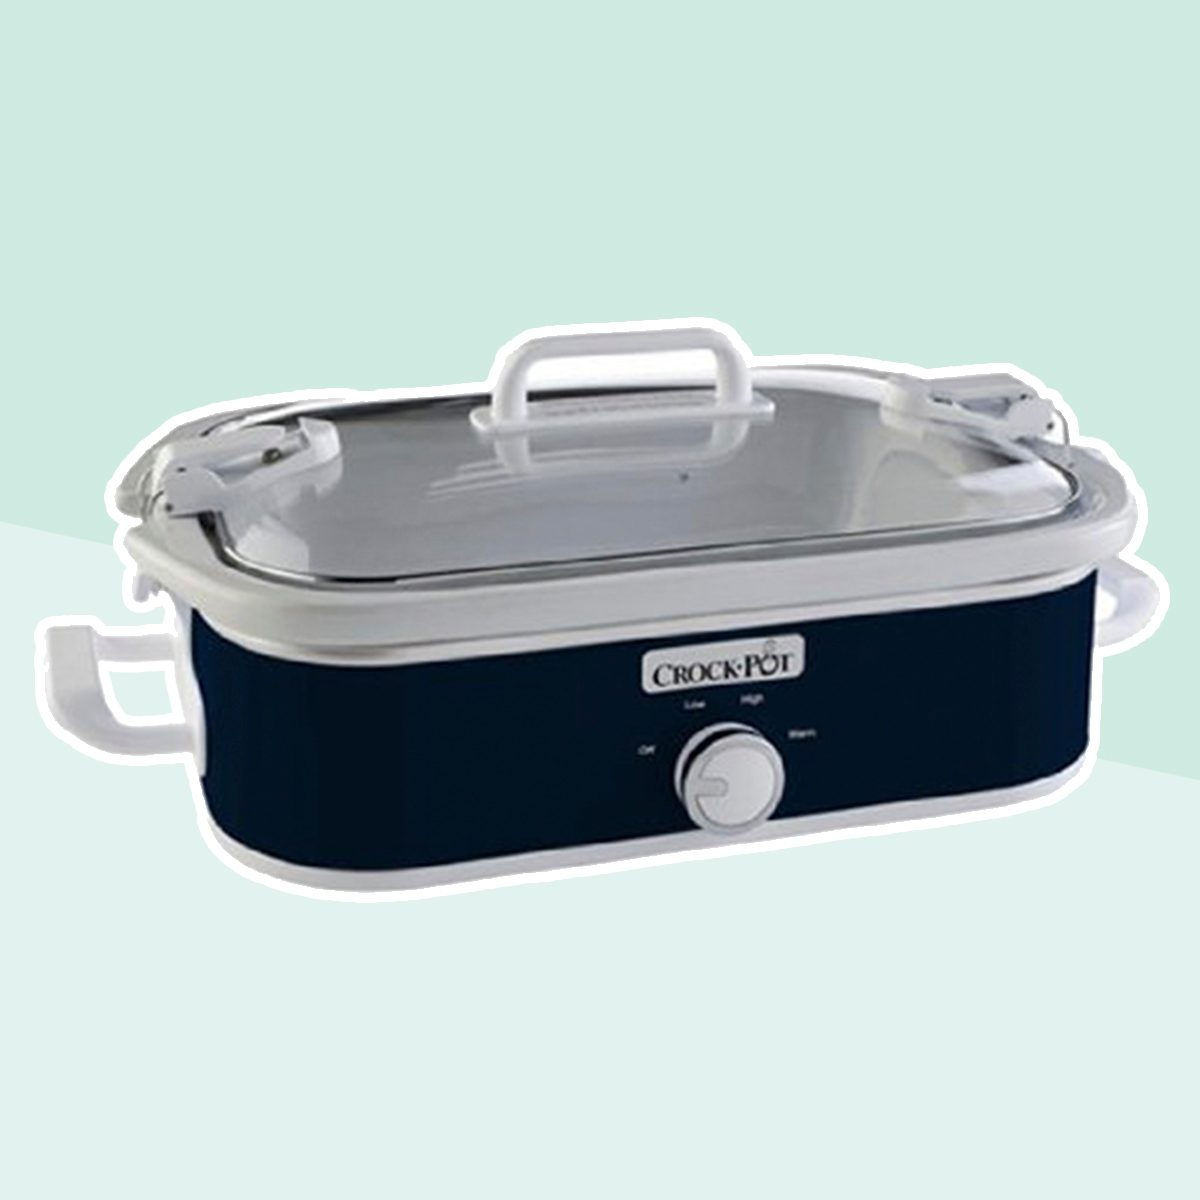 Crock-Pot SCCPCCM350-BL Manual Slow Cooker, Navy Blue